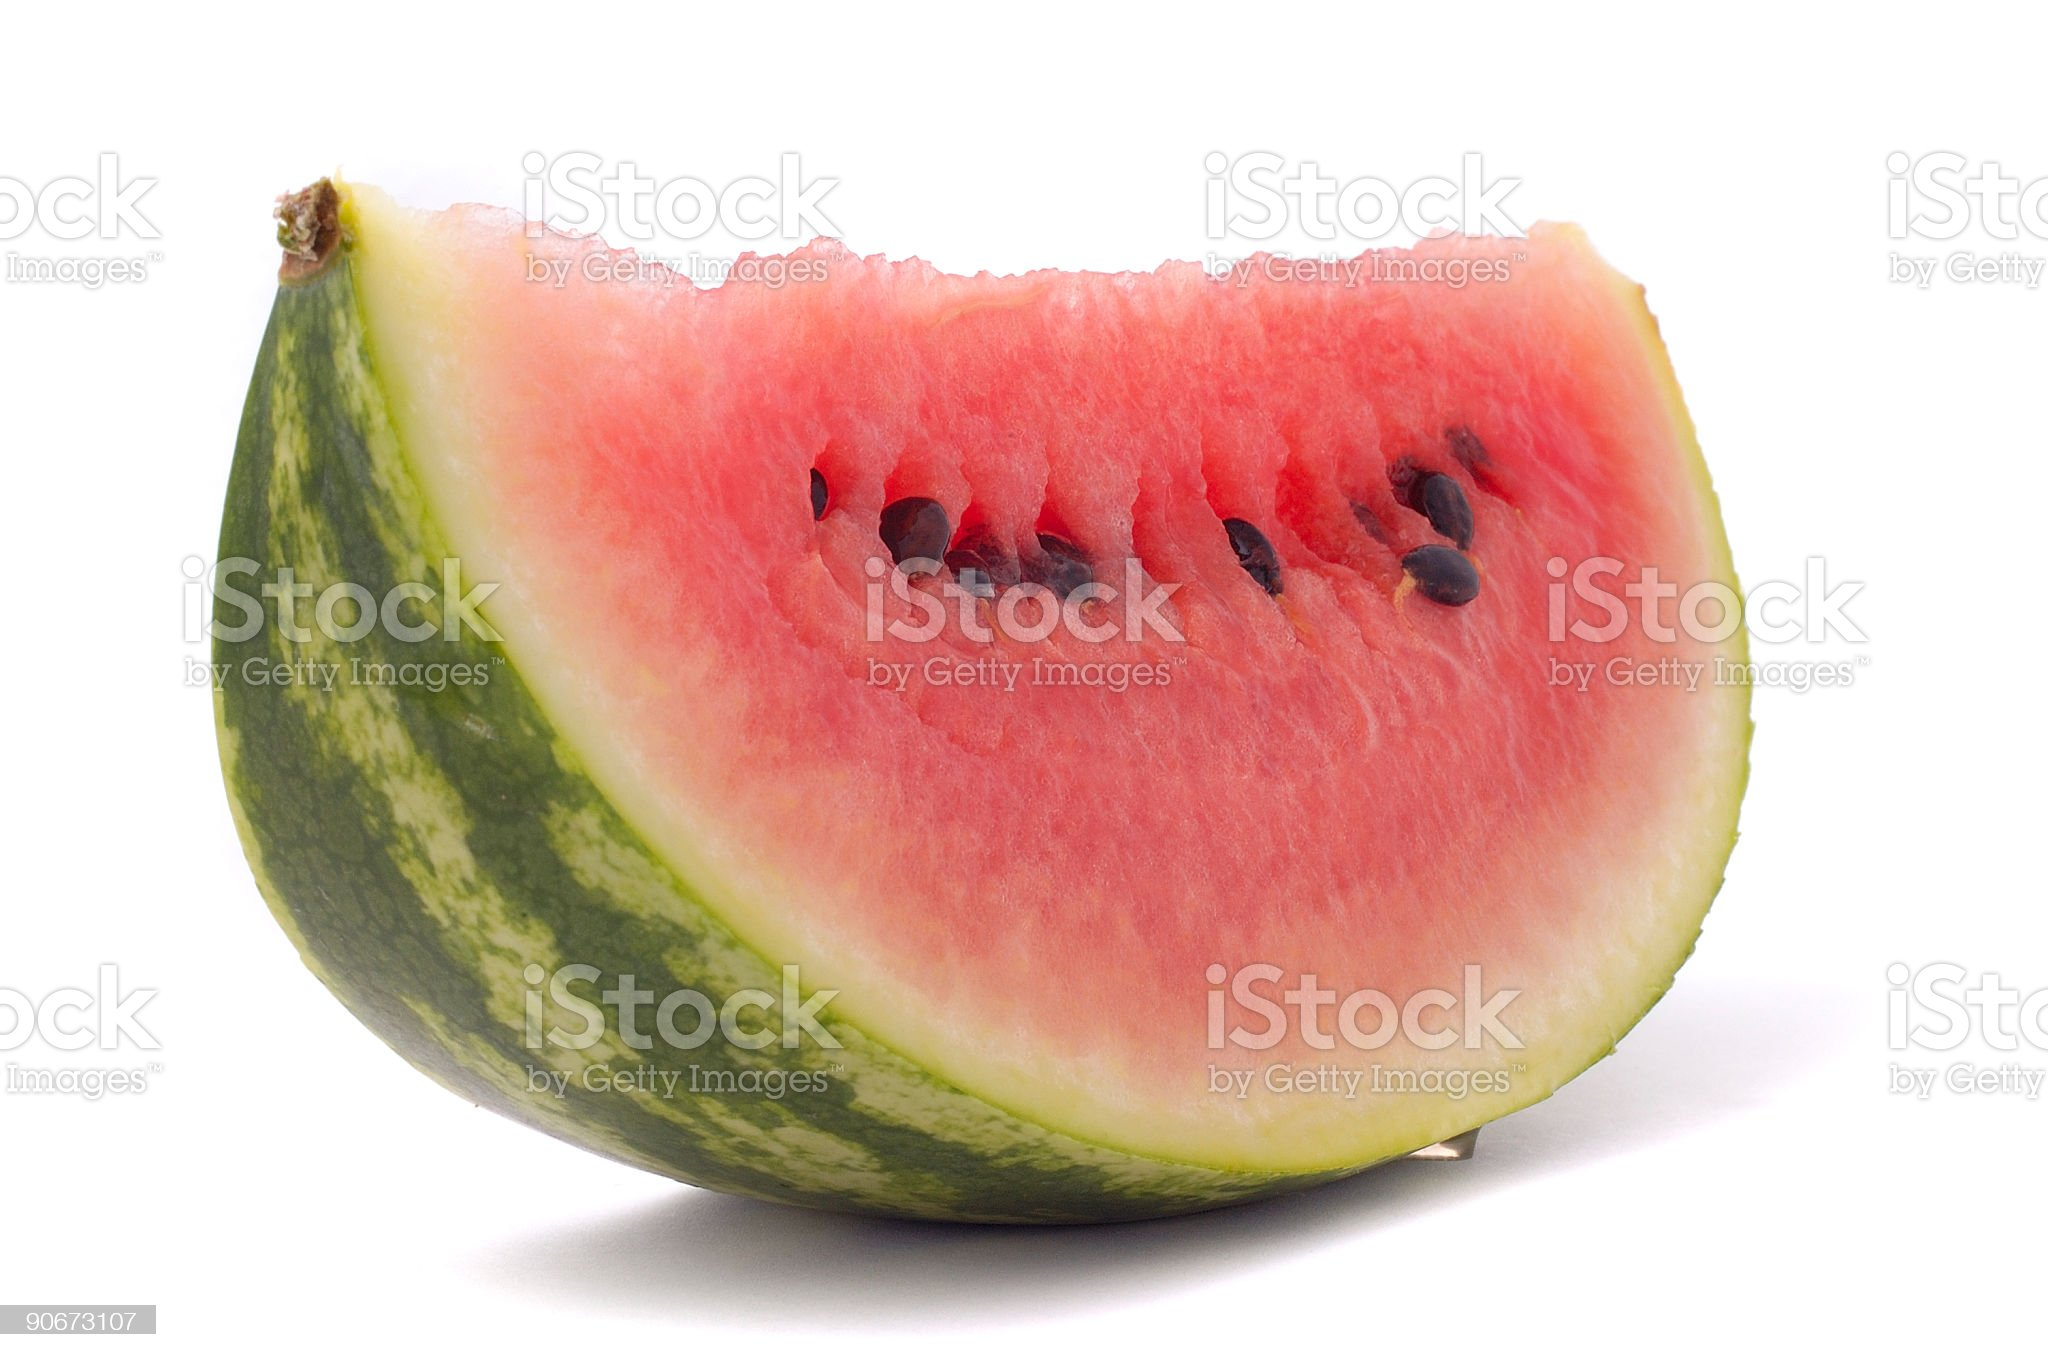 fruit, slice of juice water melon against white background royalty-free stock photo